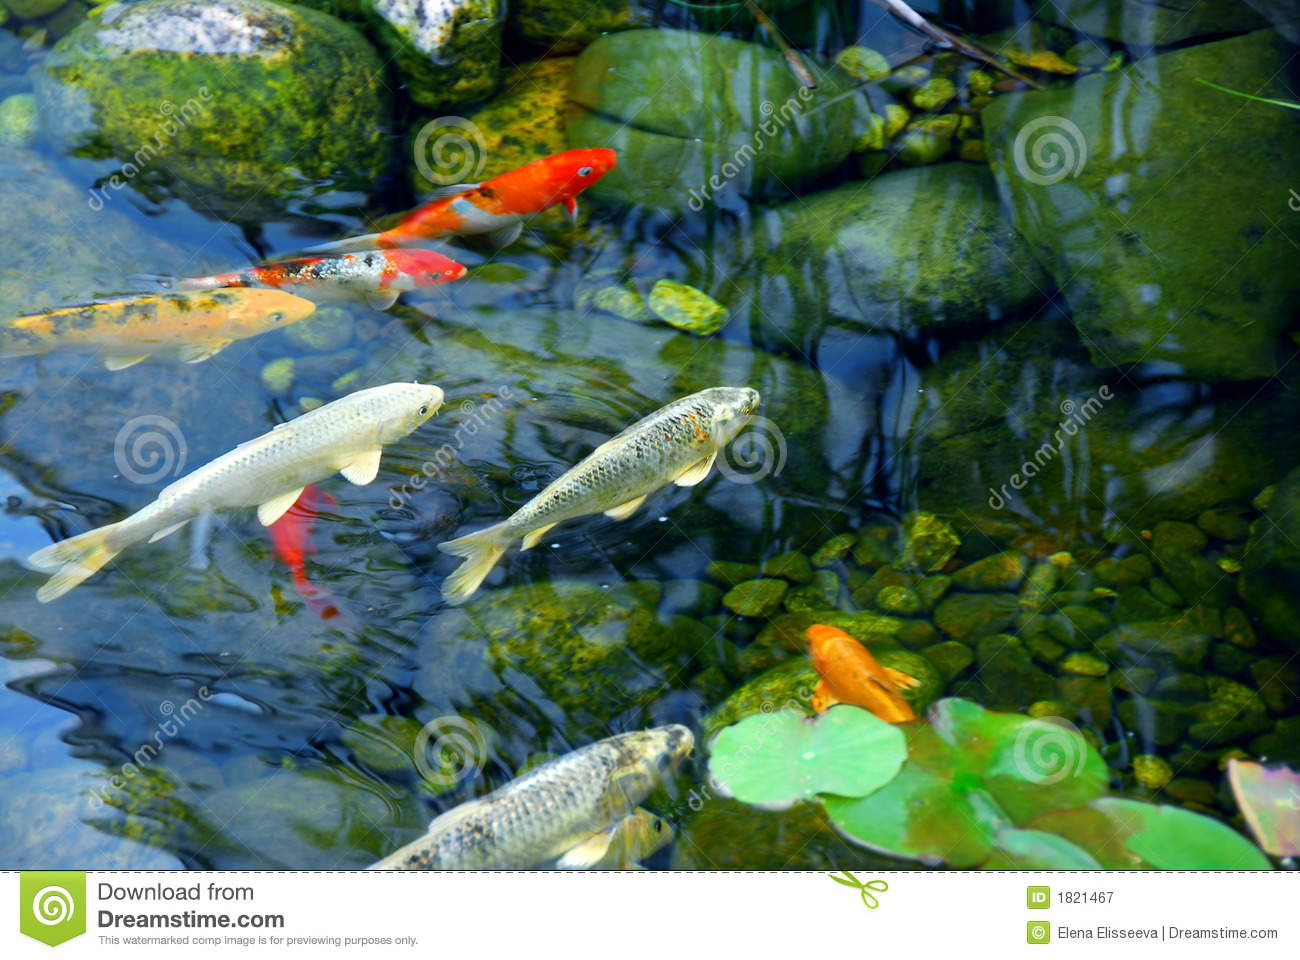 Koi pond stock image image of asia colorful plant for Koi pond photos